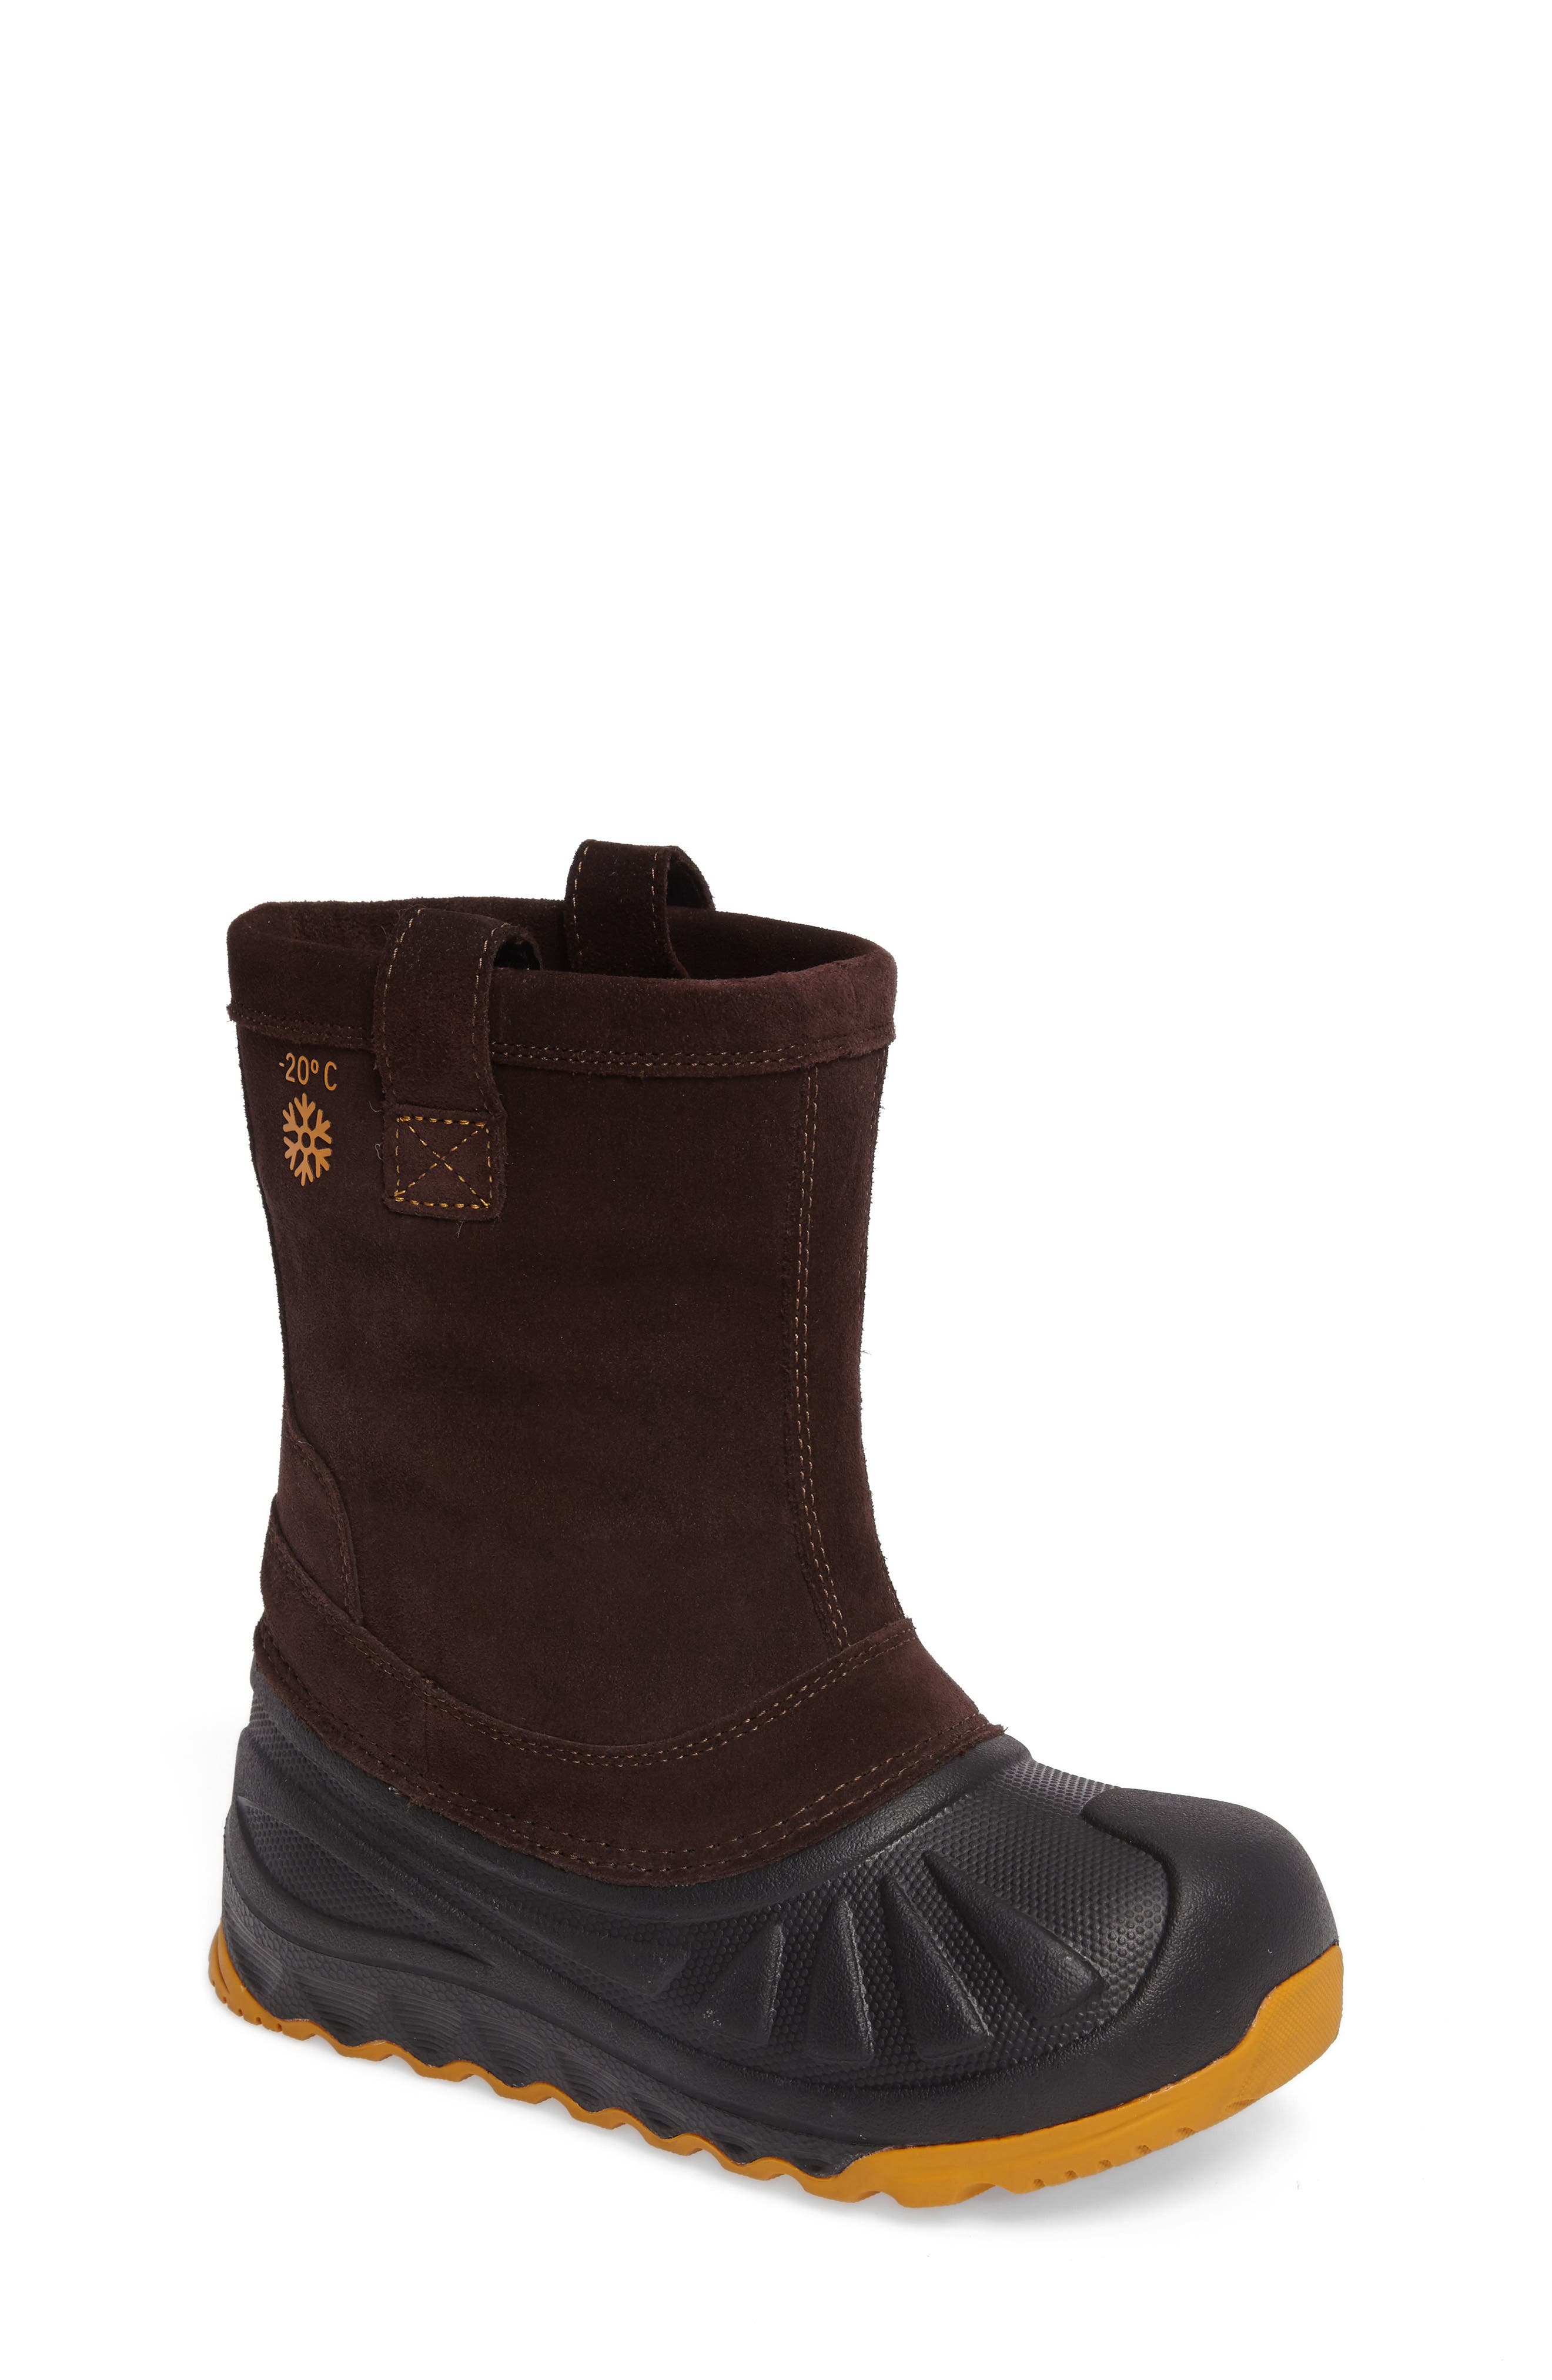 Alternate Image 1 Selected - UGG® Evertt Waterproof Thinsulate™ Insulated Snow Boot (Toddler, Little Kid & Big Kid)